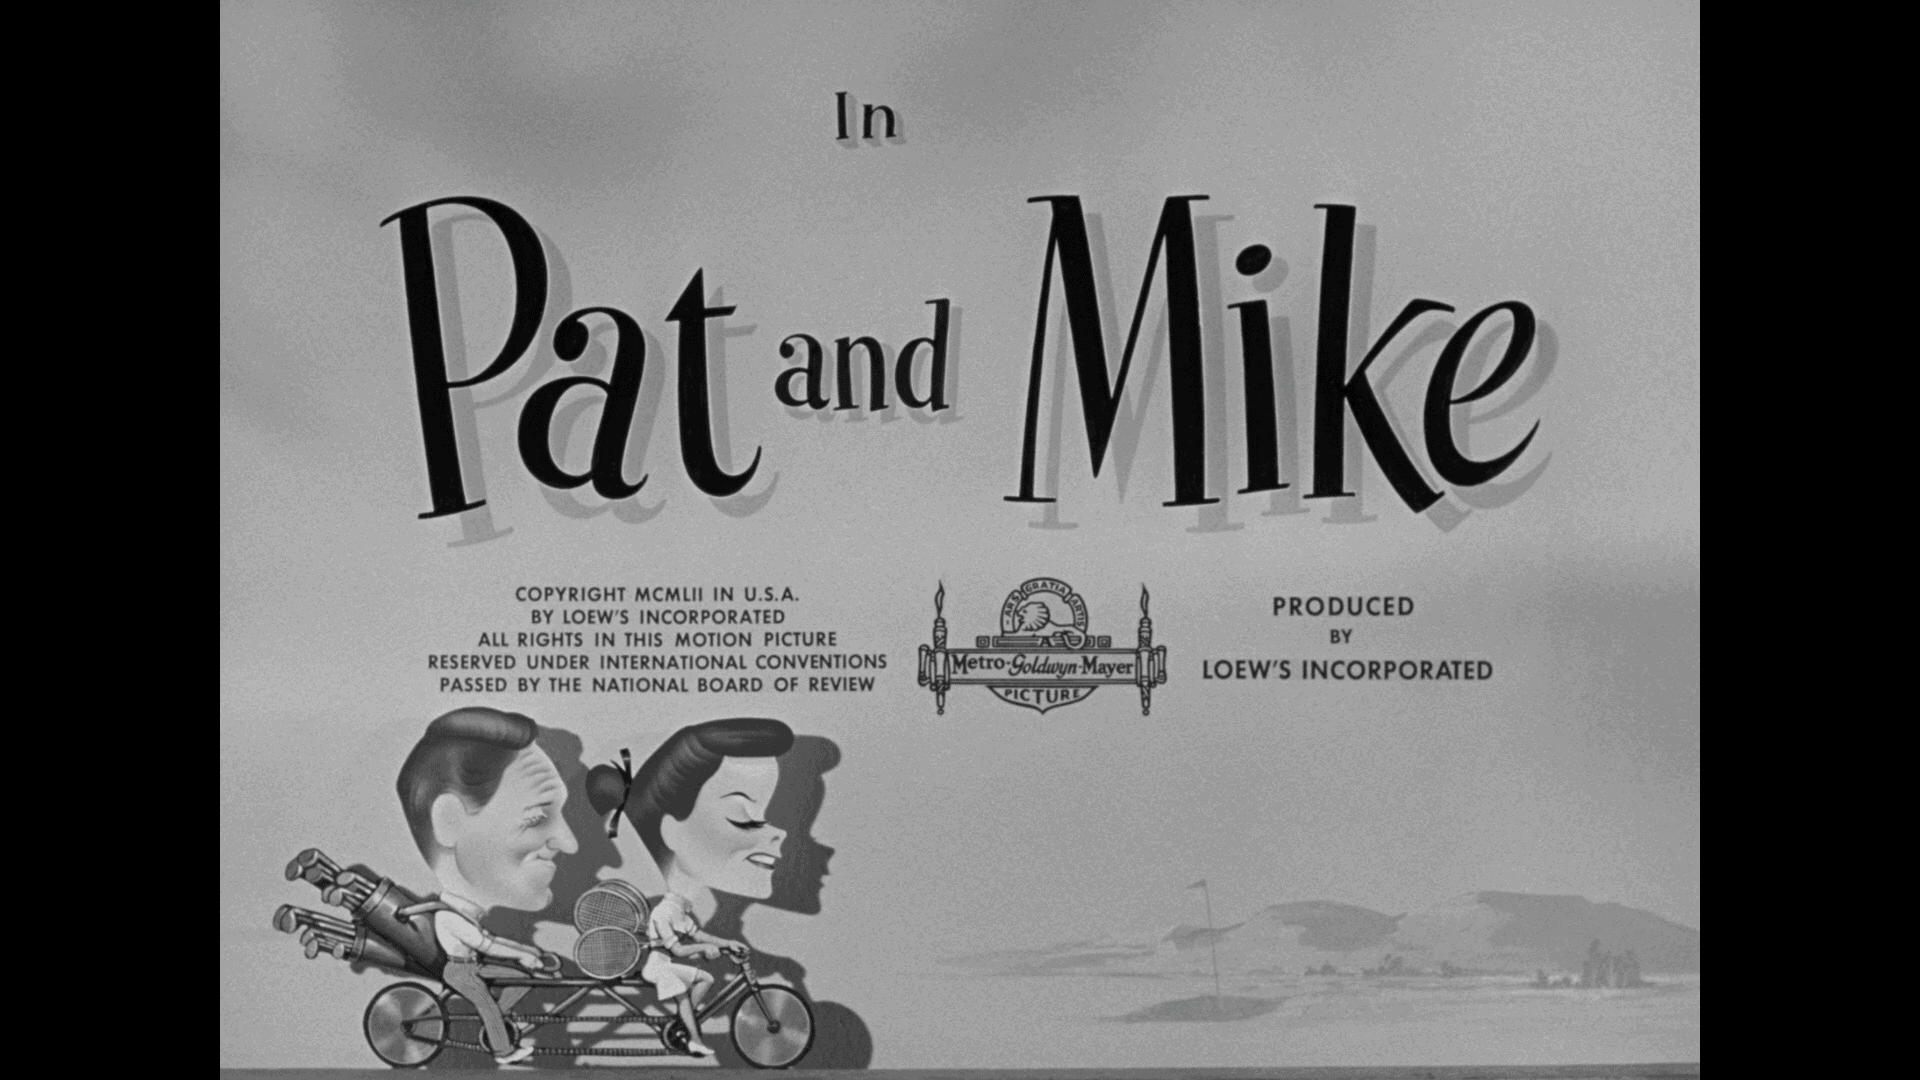 pat and mike warner archive blu-ray title